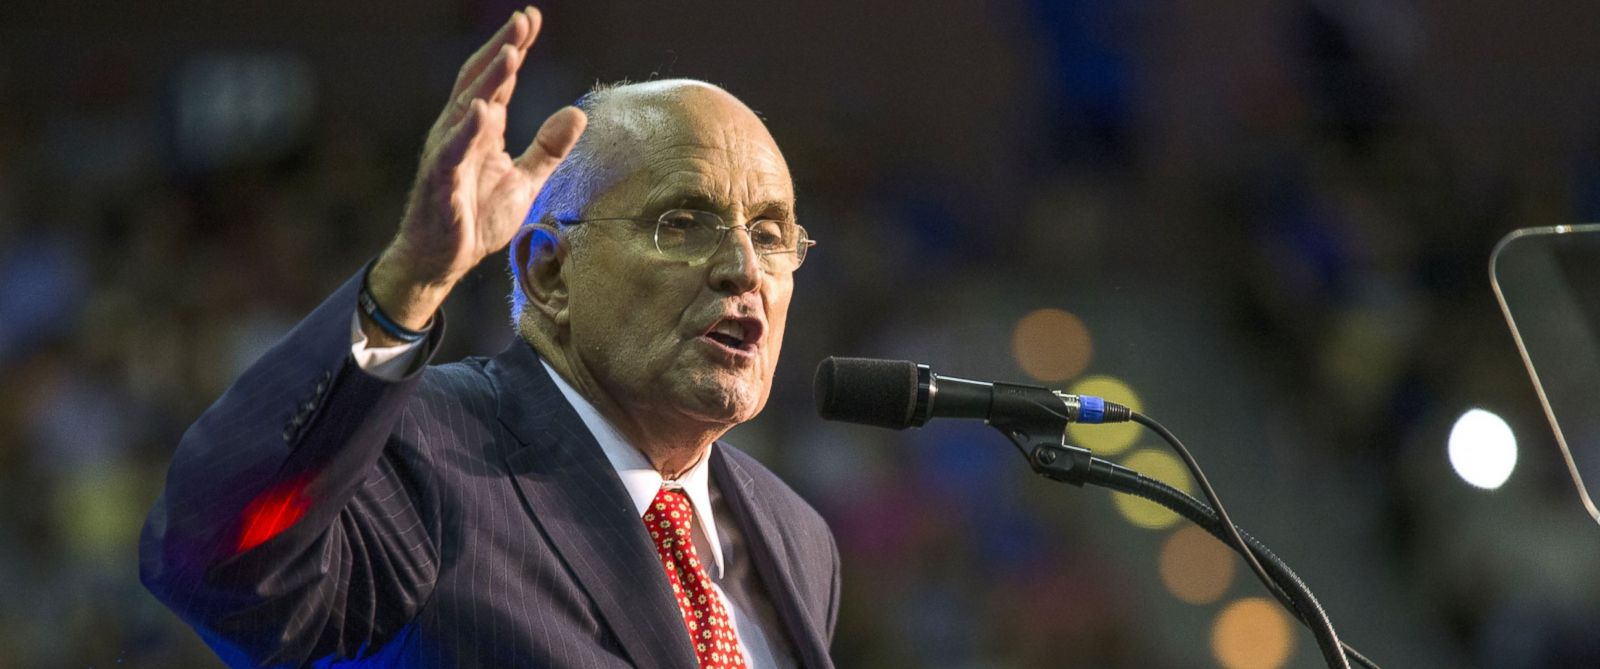 PHOTO: Rudy Giuliani speaks before introducing Republican Presidential candidate Donald Trump during a rally at the Pensacola Bay Center on September 9, 2016 in Pensacola, Florida.